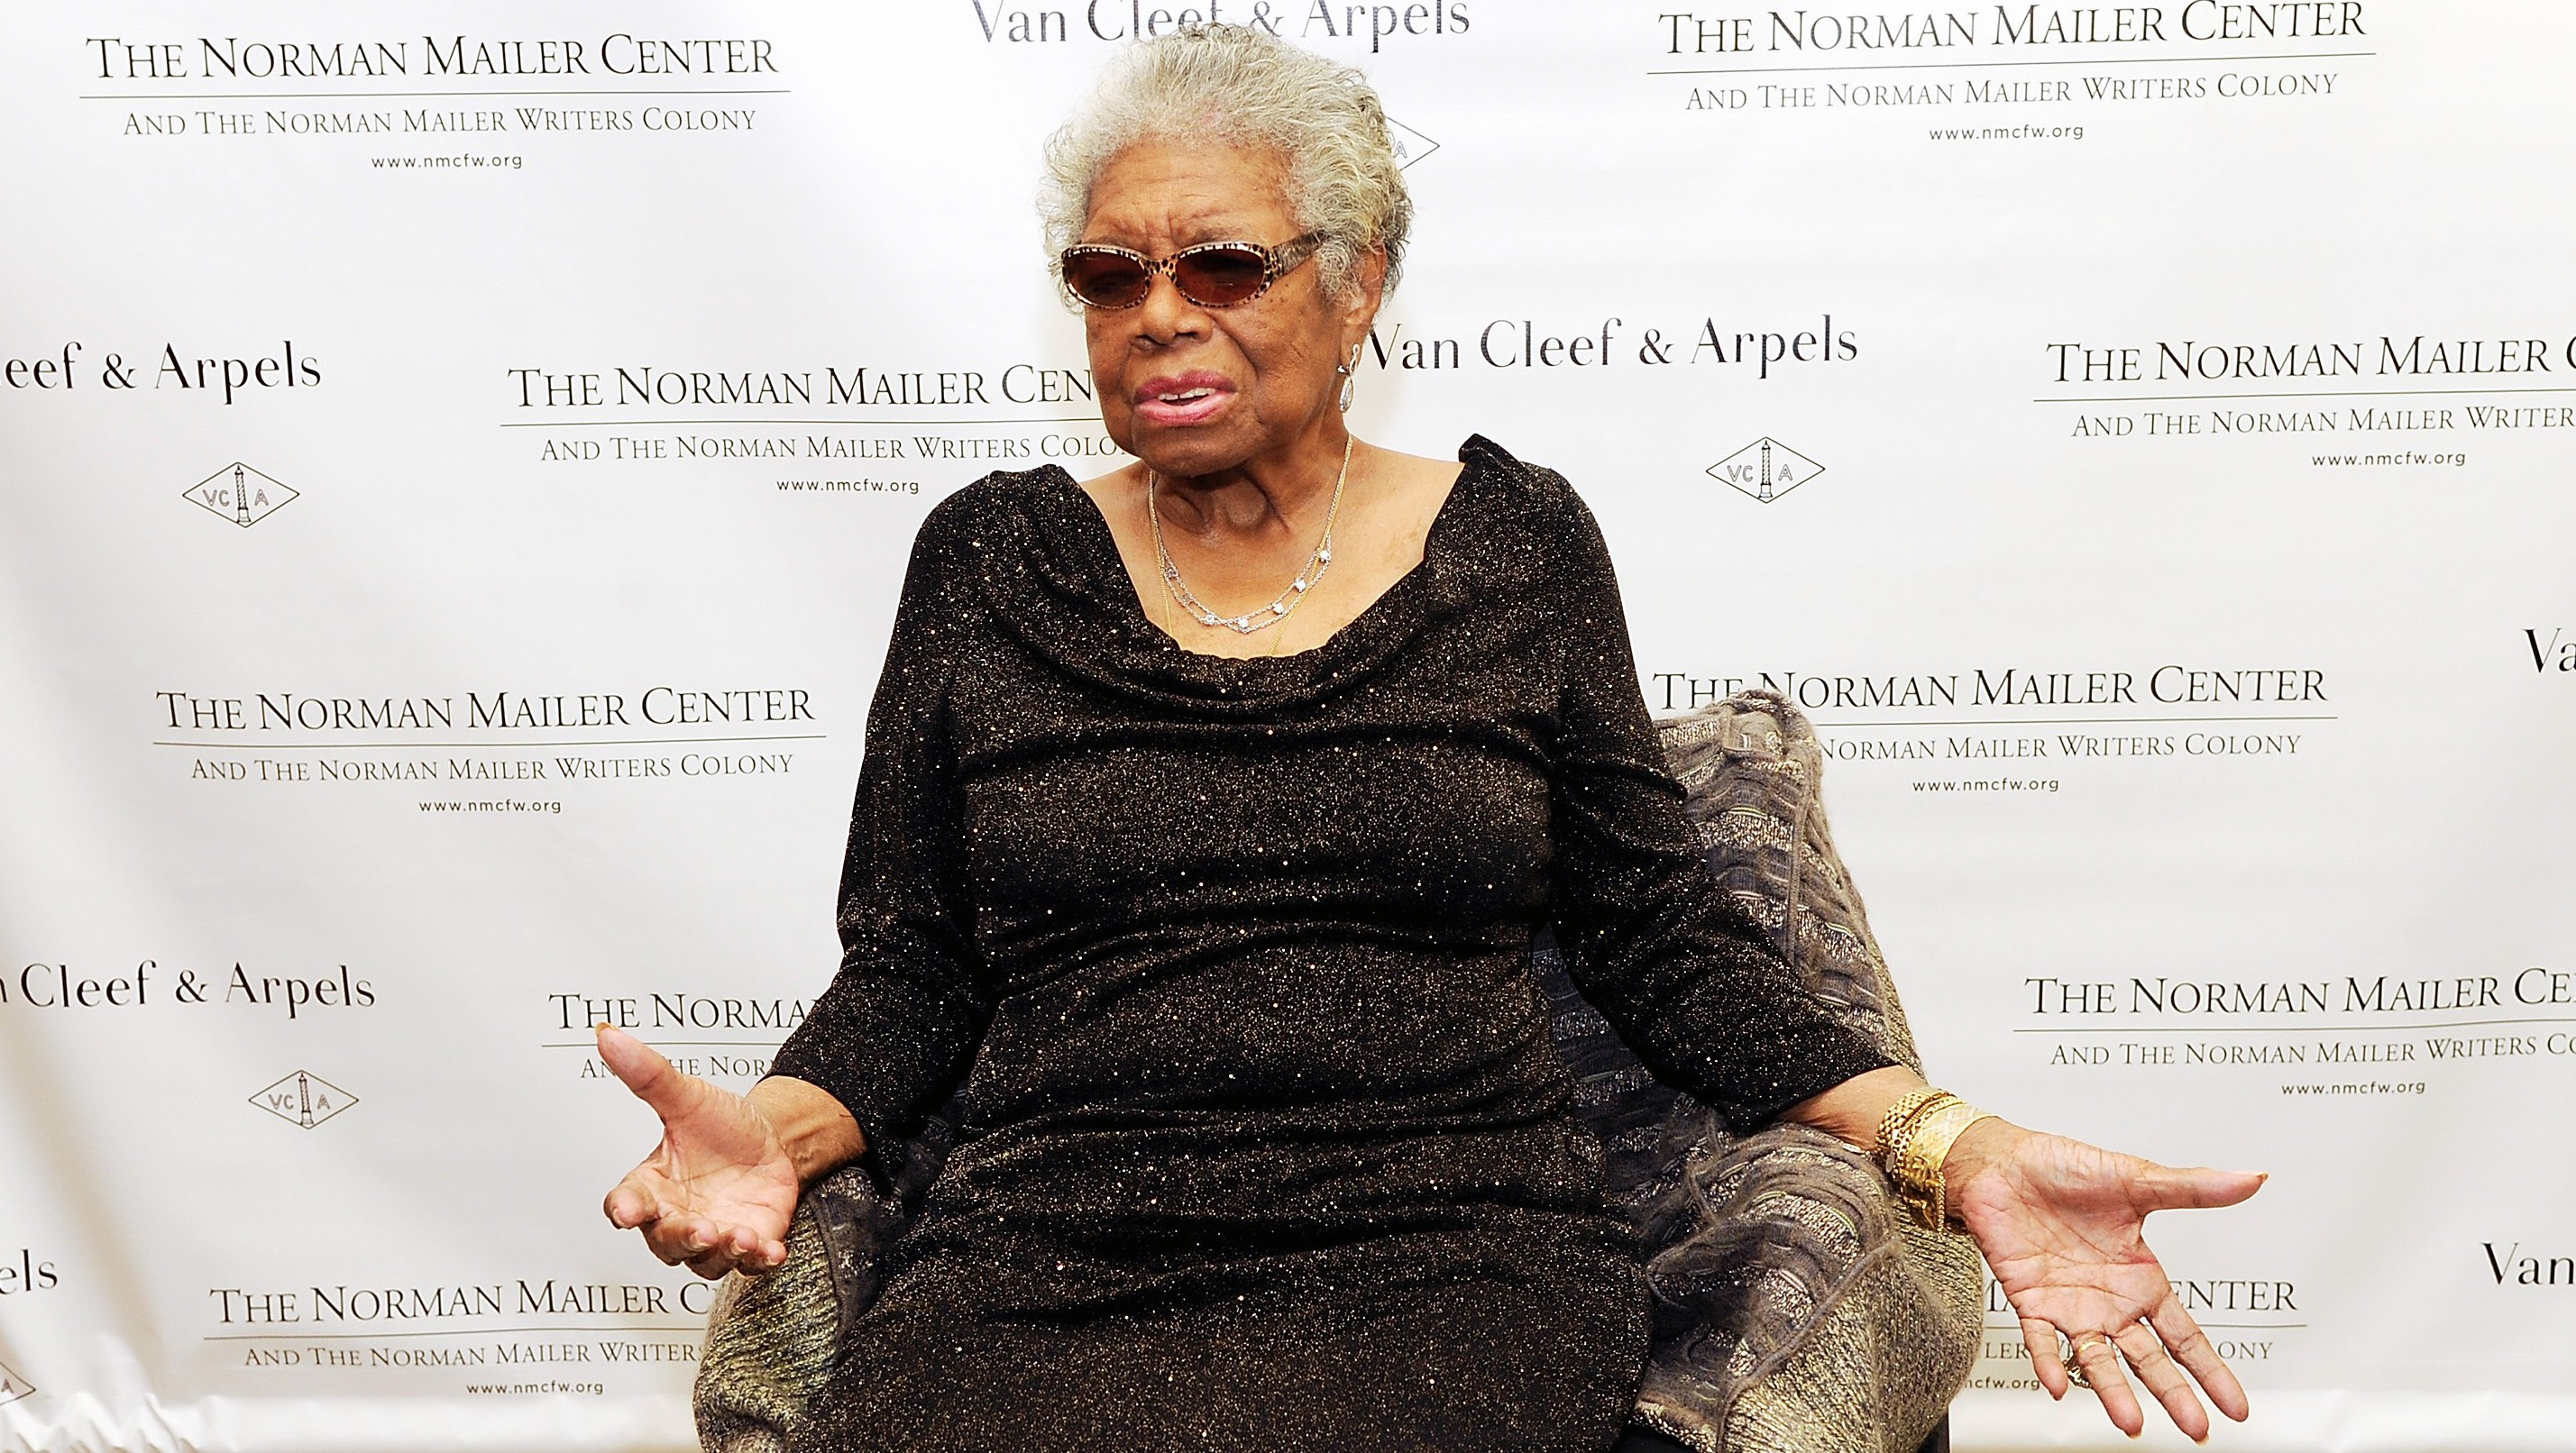 Lifetime Achievement Award recipient Dr. Maya Angelou attends the 5th annual Norman Mailer Center benefit gala at The New York Public Library on Thursday, Oct. 17, 2013 in New York.(Photo by Evan Agostini/Invision/AP)